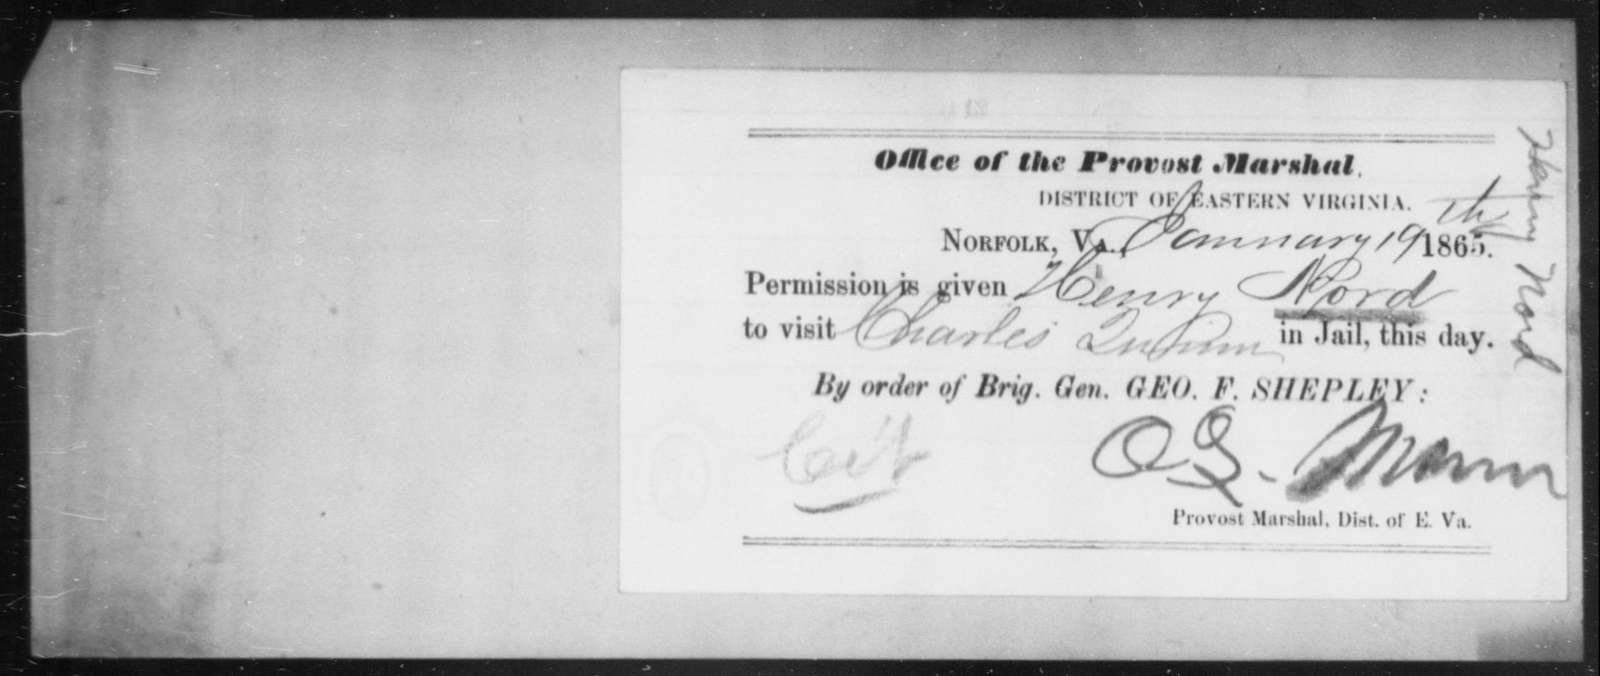 Nord, Henry - State: Virginia - Year: 1865